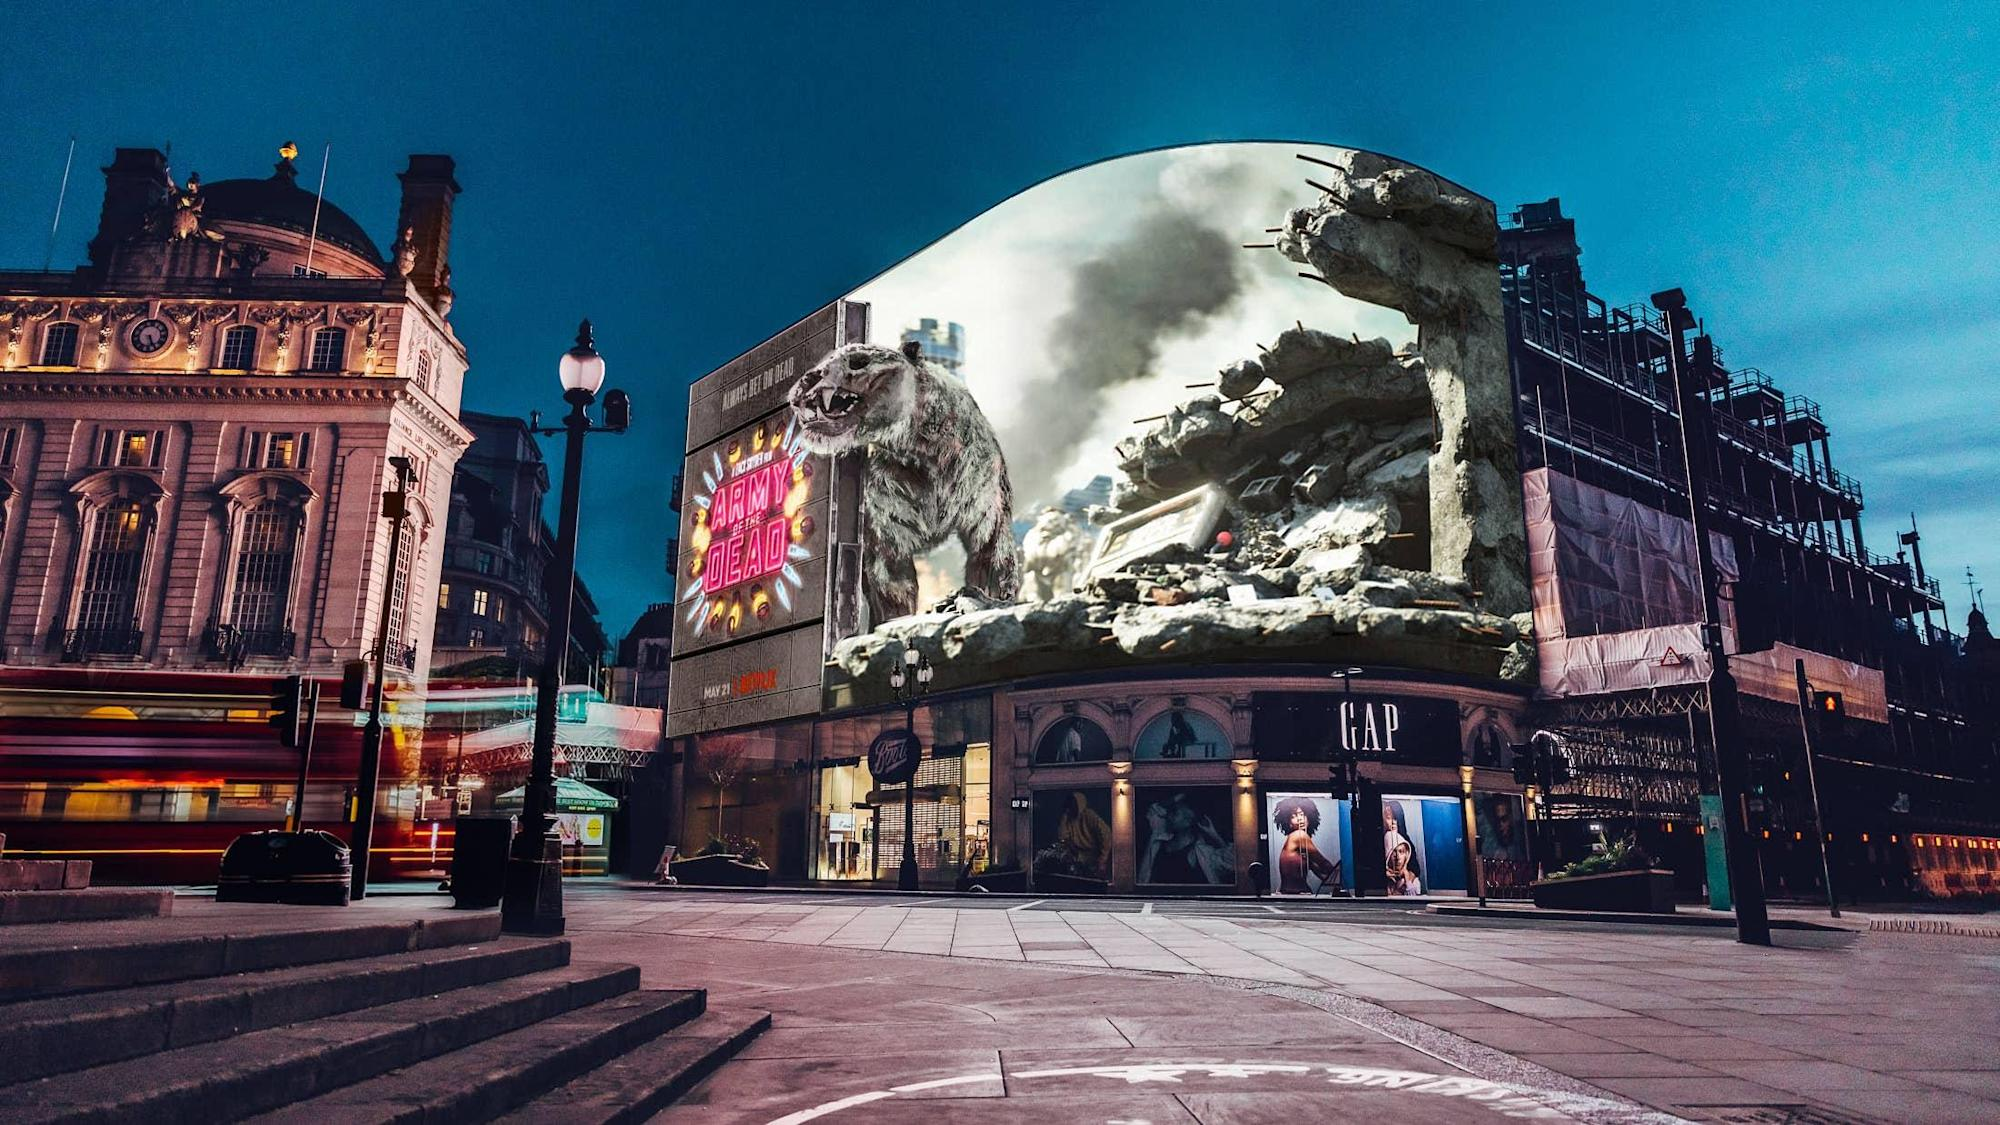 3D zombie tiger emerges from central London billboard